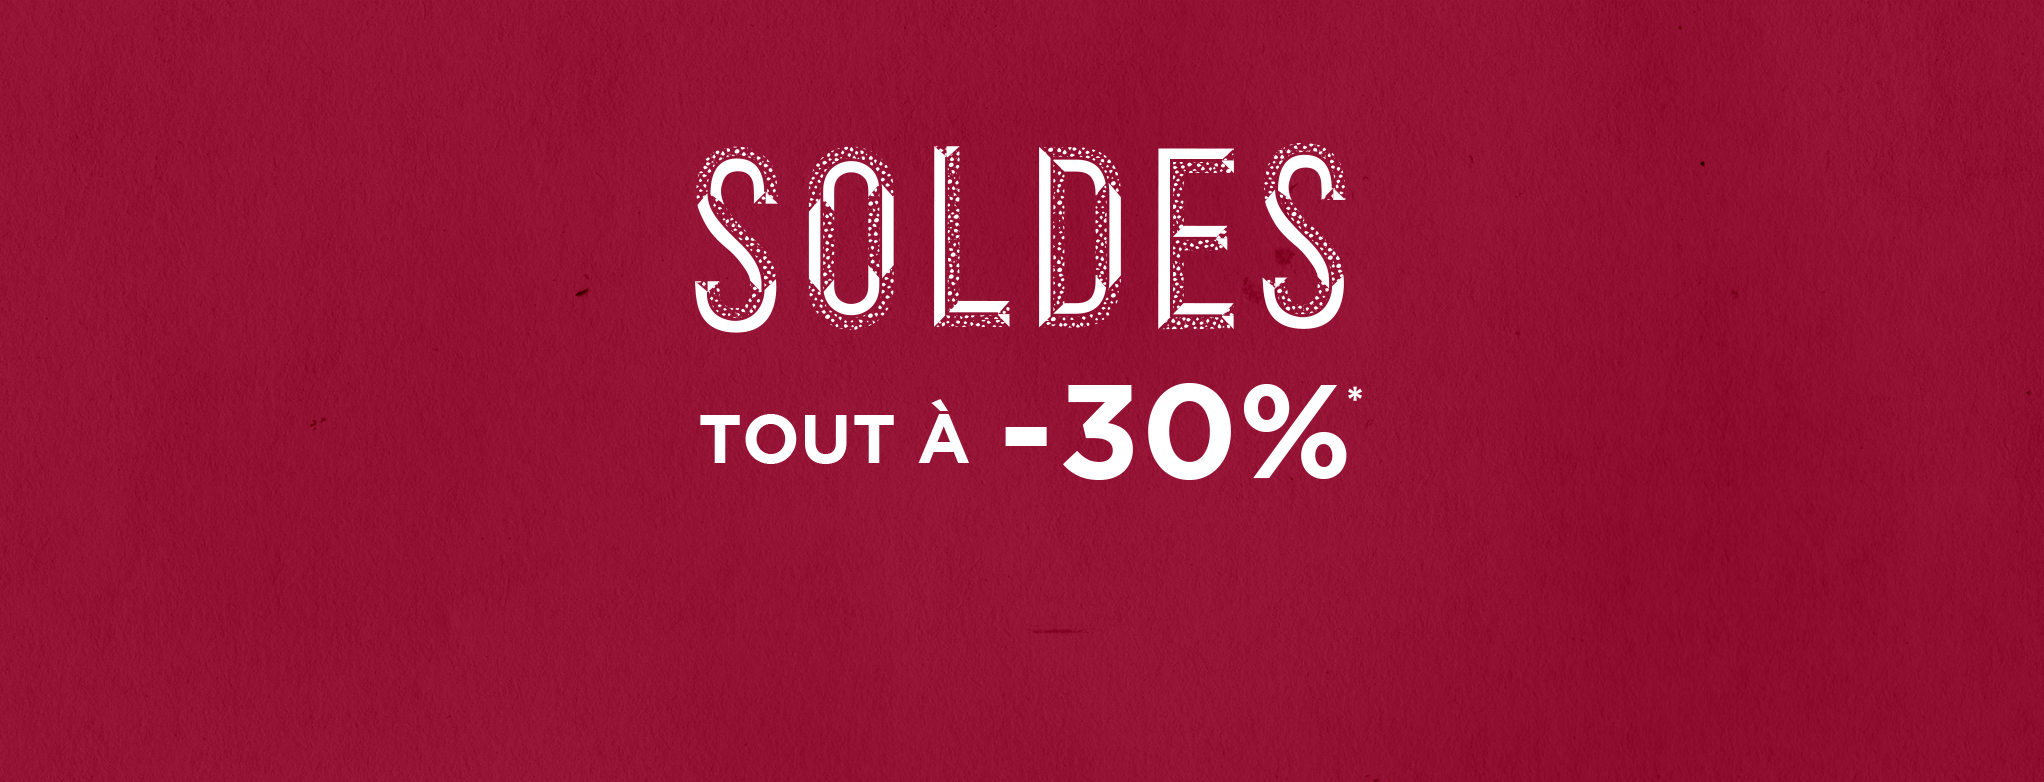 Sale all at 30%